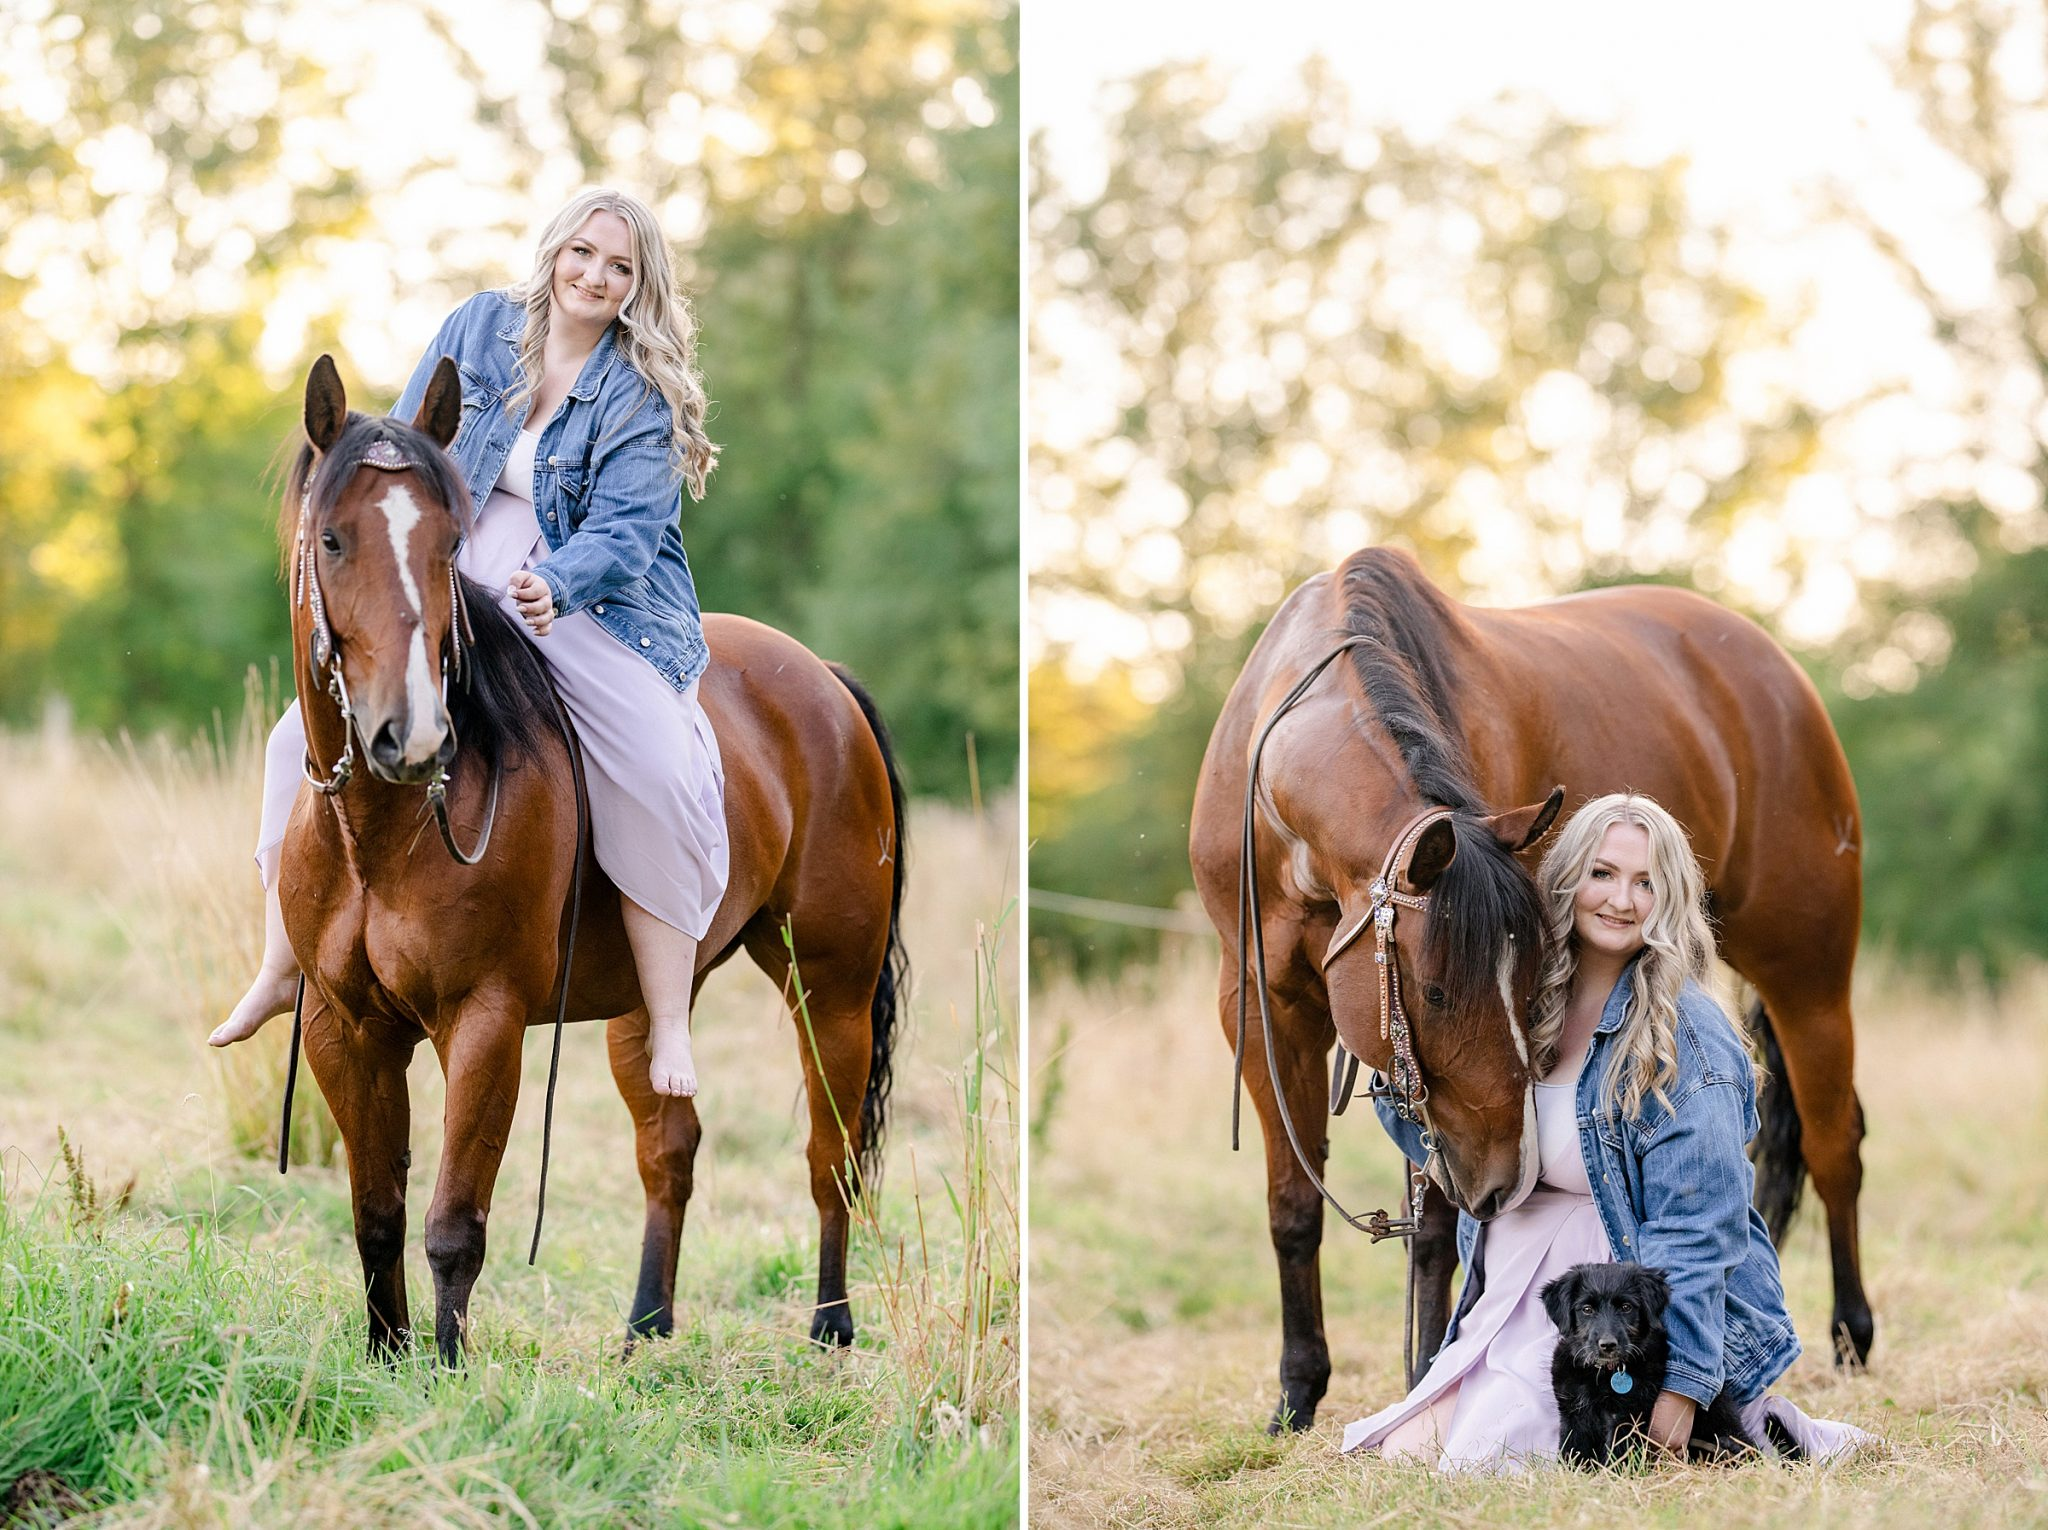 https://kirstiemarie.com/wp-content/uploads/2020/09/Jaqueline-and-Victoria-Burnard-Sisters-Barrel-Racing-TA-Ranch-APHA-Paint-Horse-by-Kirstie-Marie-Photography_0014-2048x1530.jpg